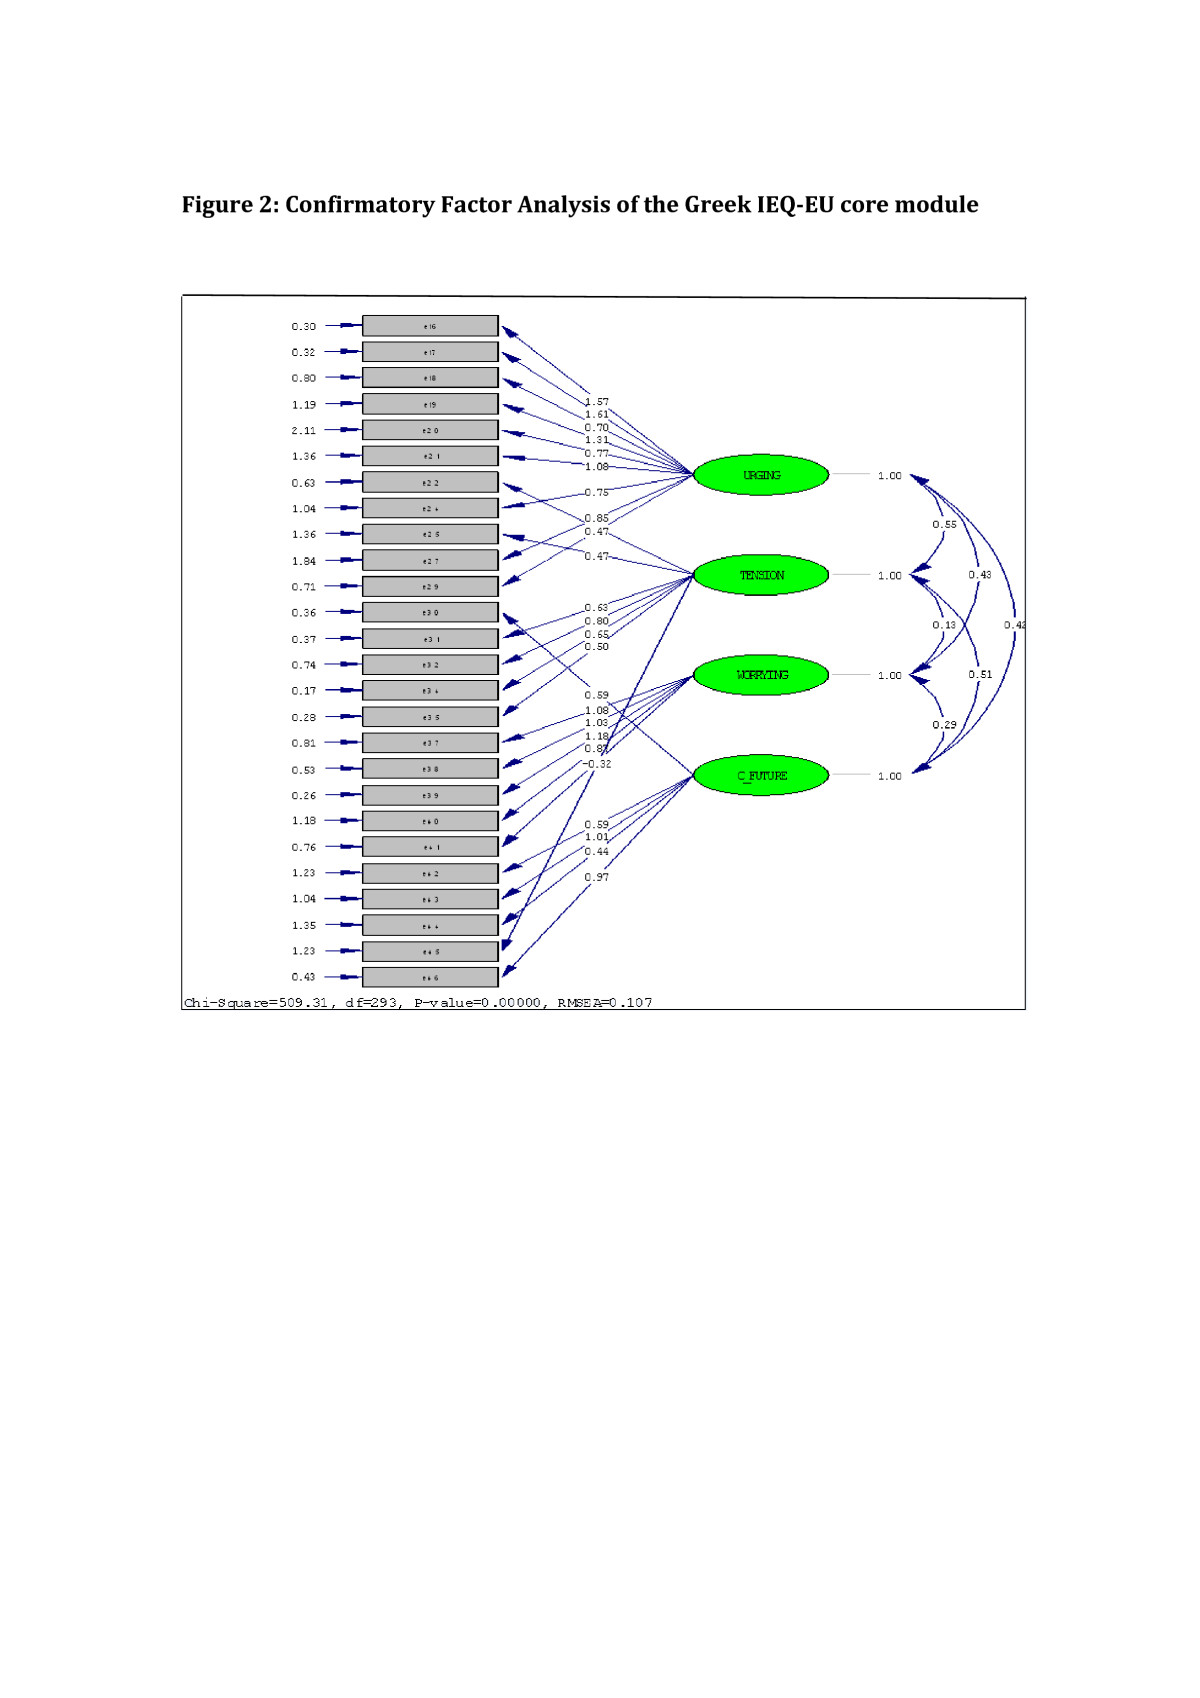 http://static-content.springer.com/image/art%3A10.1186%2F1744-859X-12-3/MediaObjects/12991_2012_Article_1345_Fig2_HTML.jpg